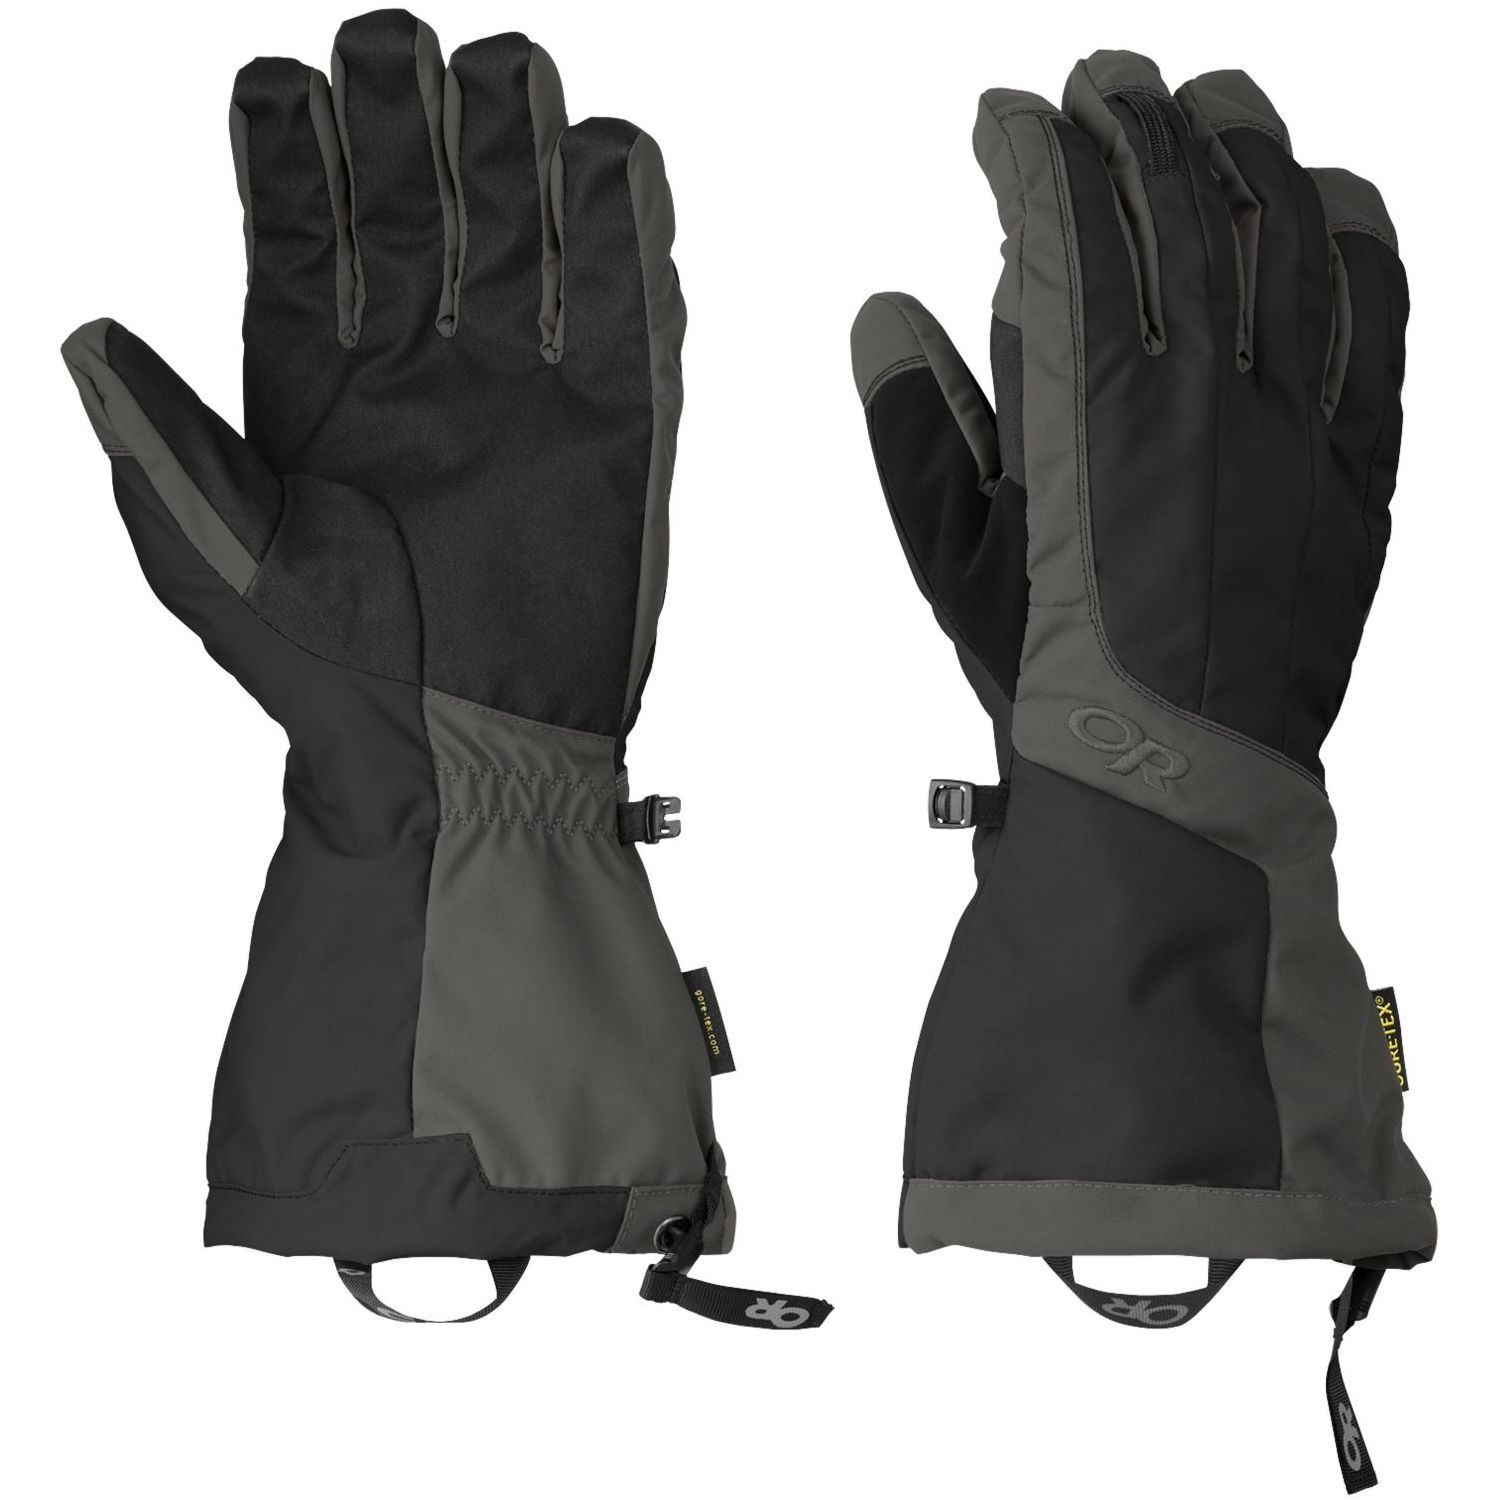 Outdoor Research Arete, guantes con interior polar extraíble